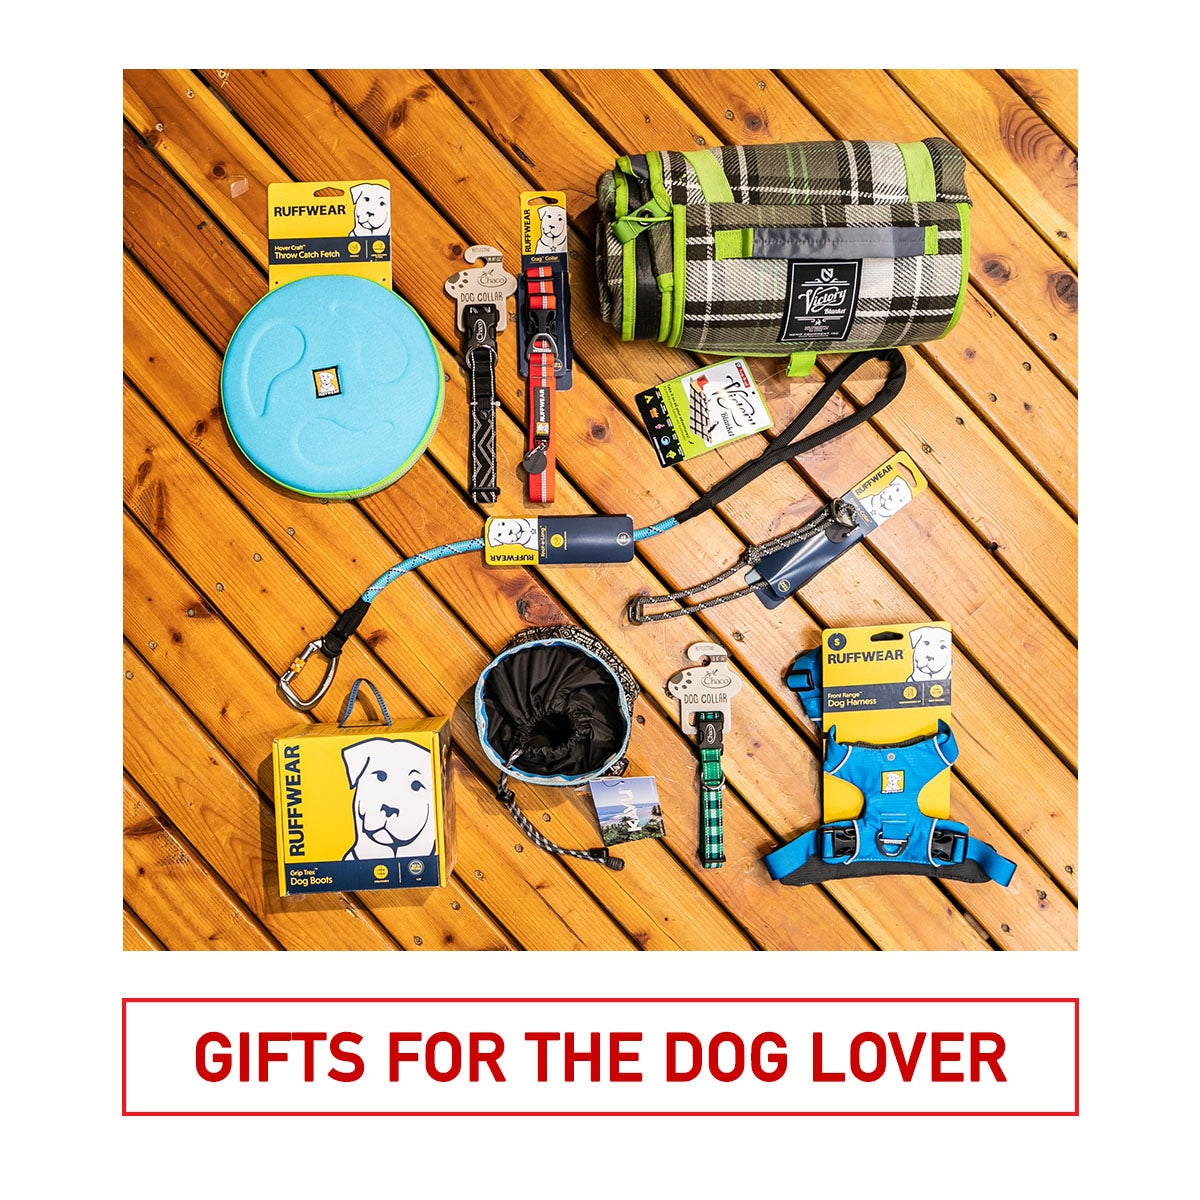 Gifts for the Dog Lover